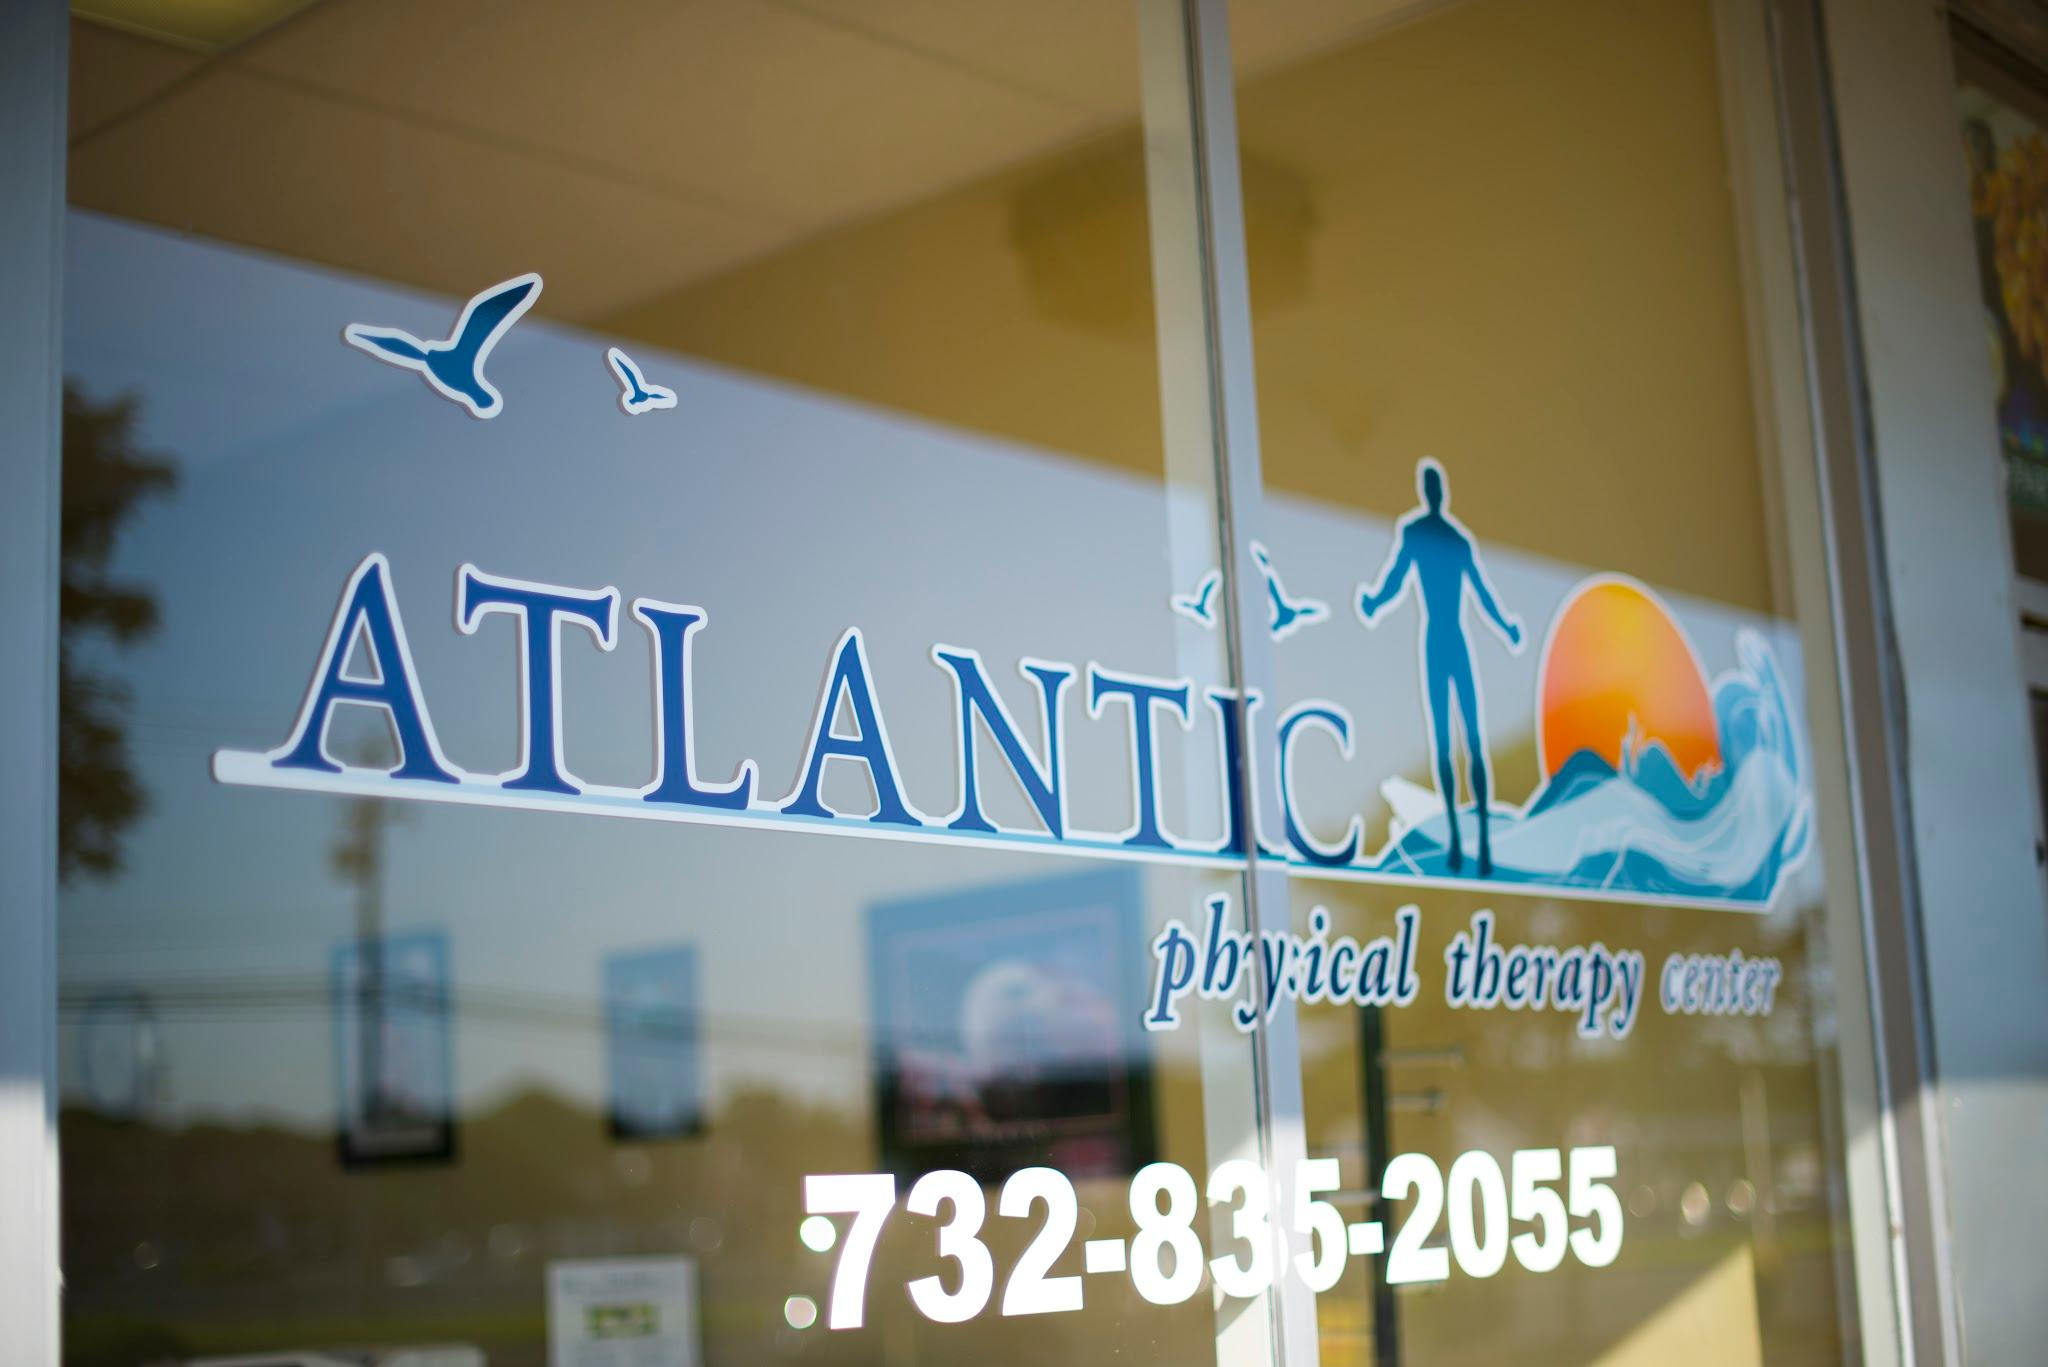 Atlantic Physical Therapy Center - Monroe, NJ image 0